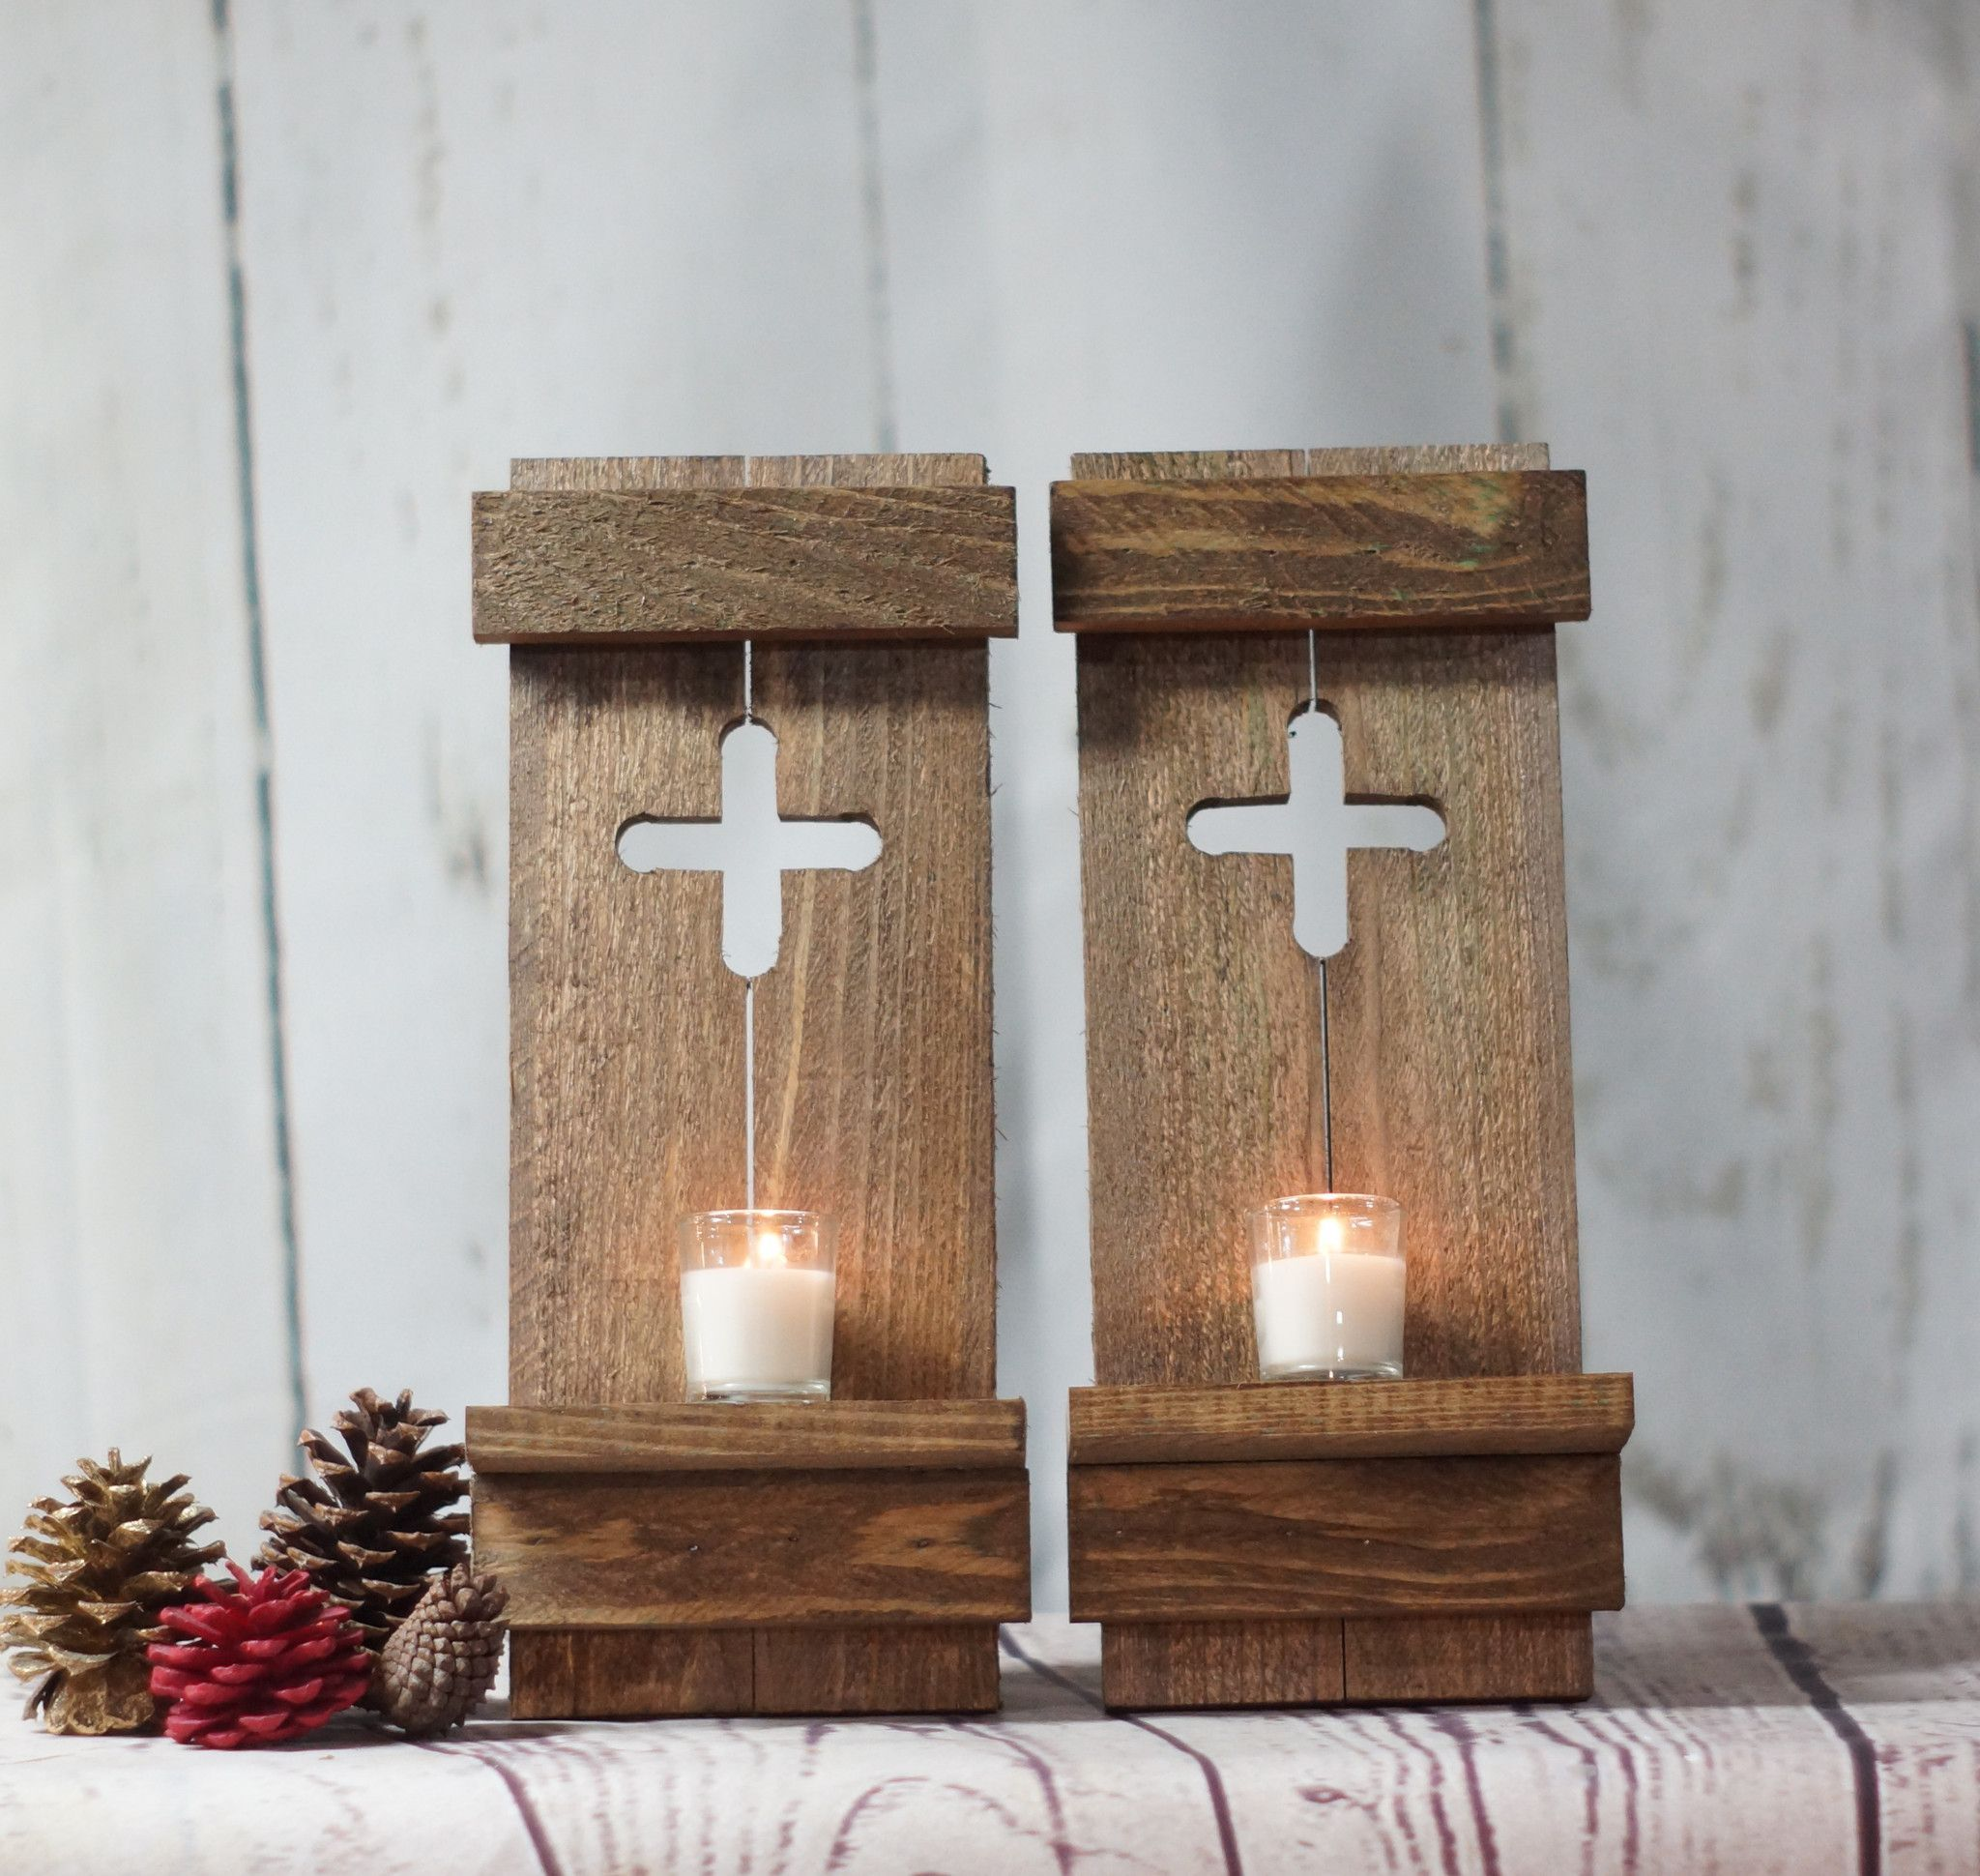 Cool wall sconce lighting wall sconces wood walls and barn